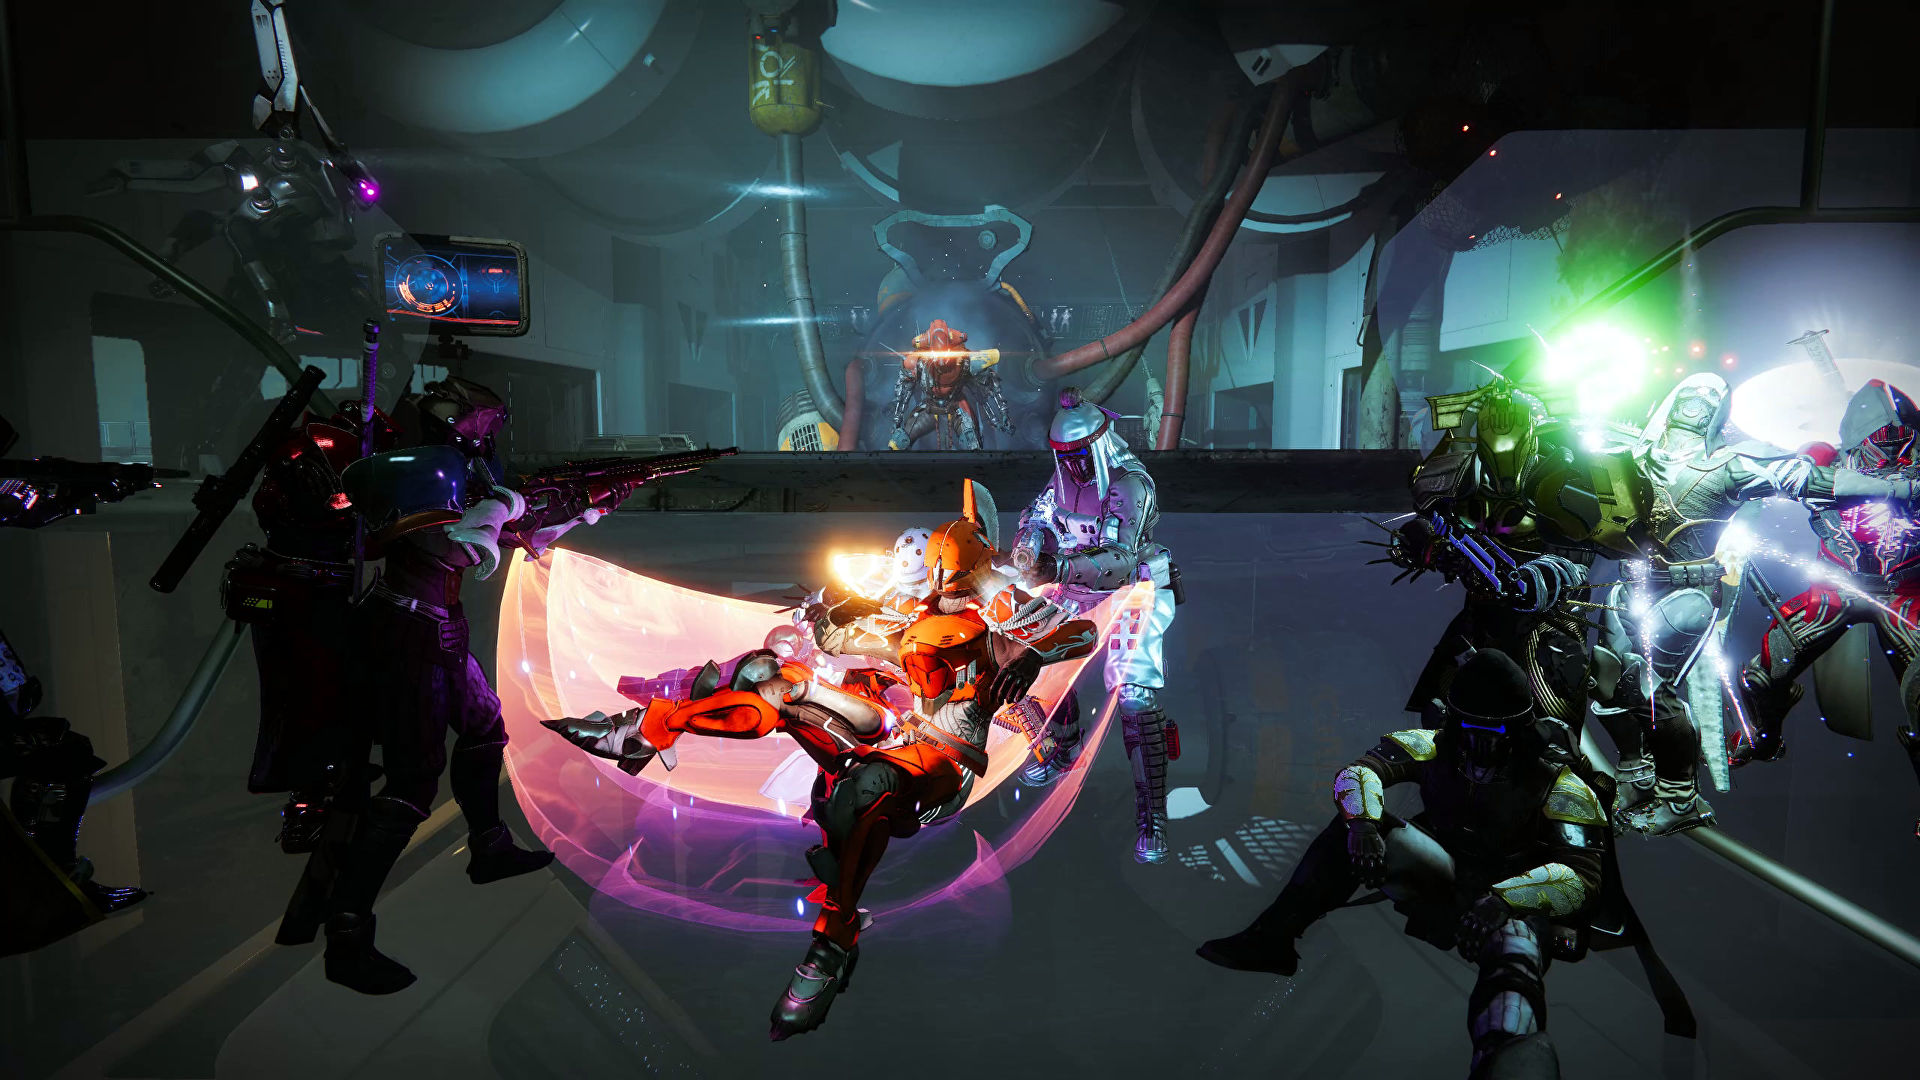 Destiny 2's glitch allowing 12-player raids is such wonderful chaos